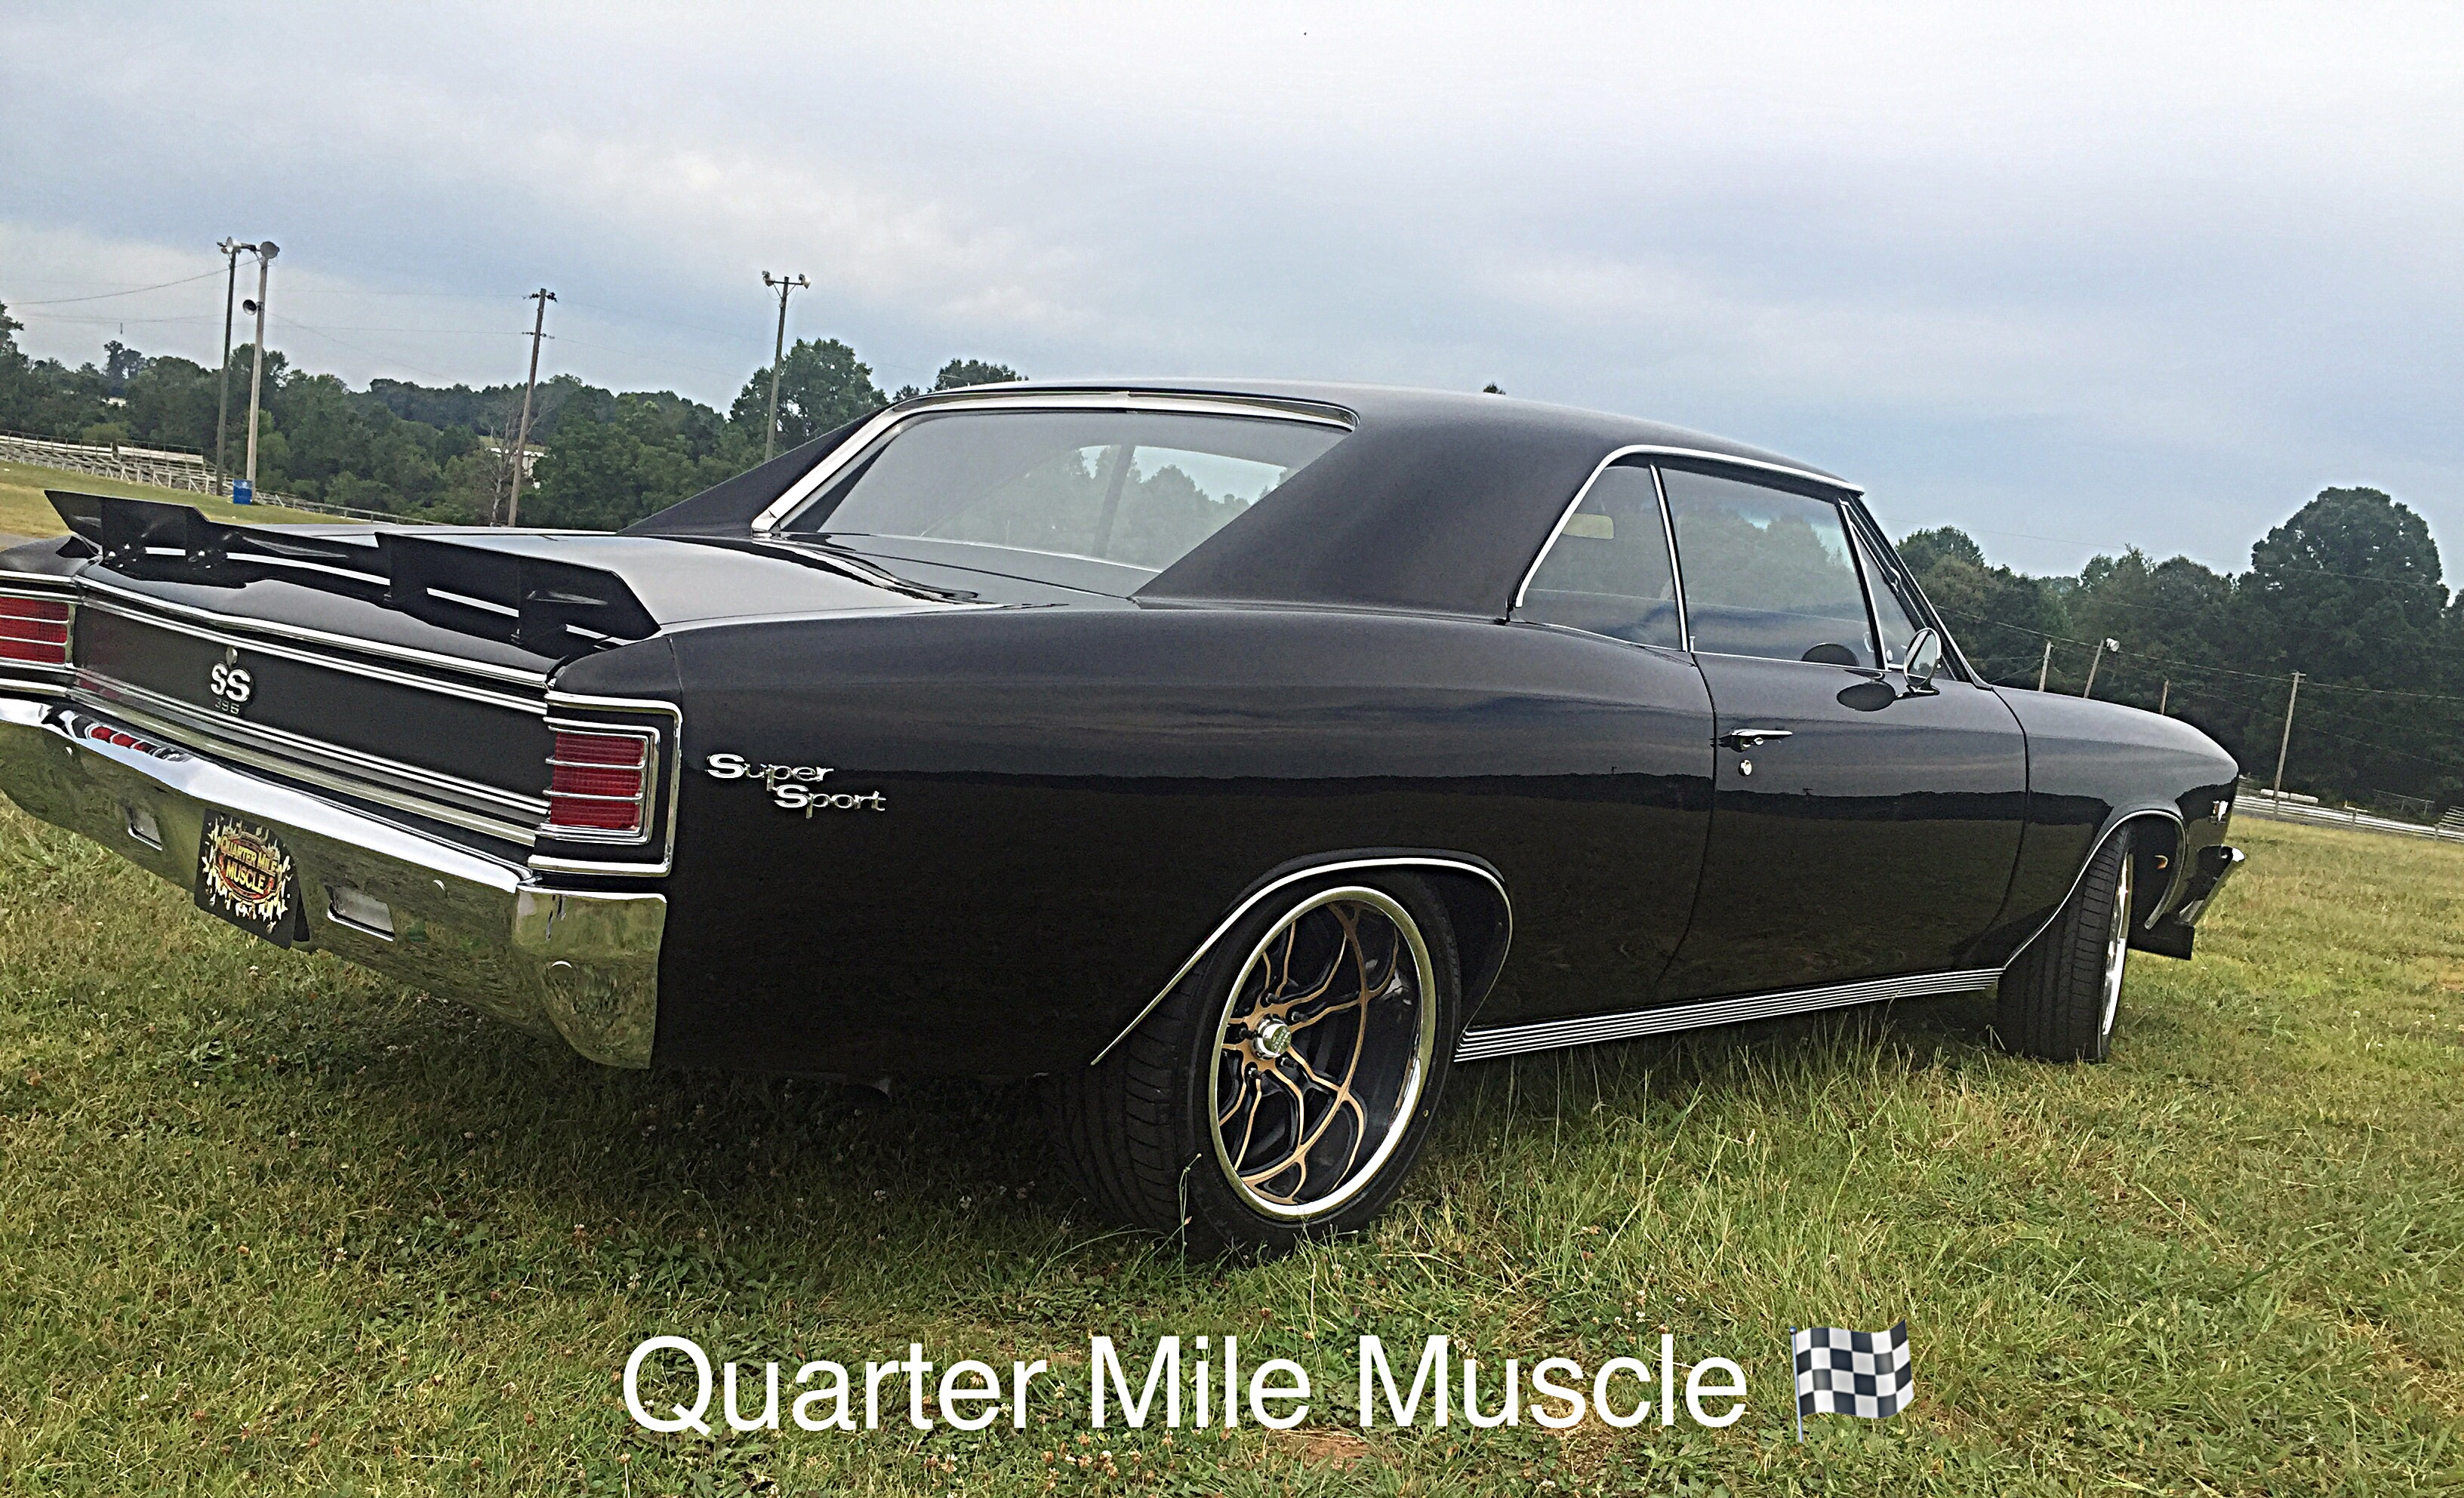 67 Chevelle Hot Rod by QMM